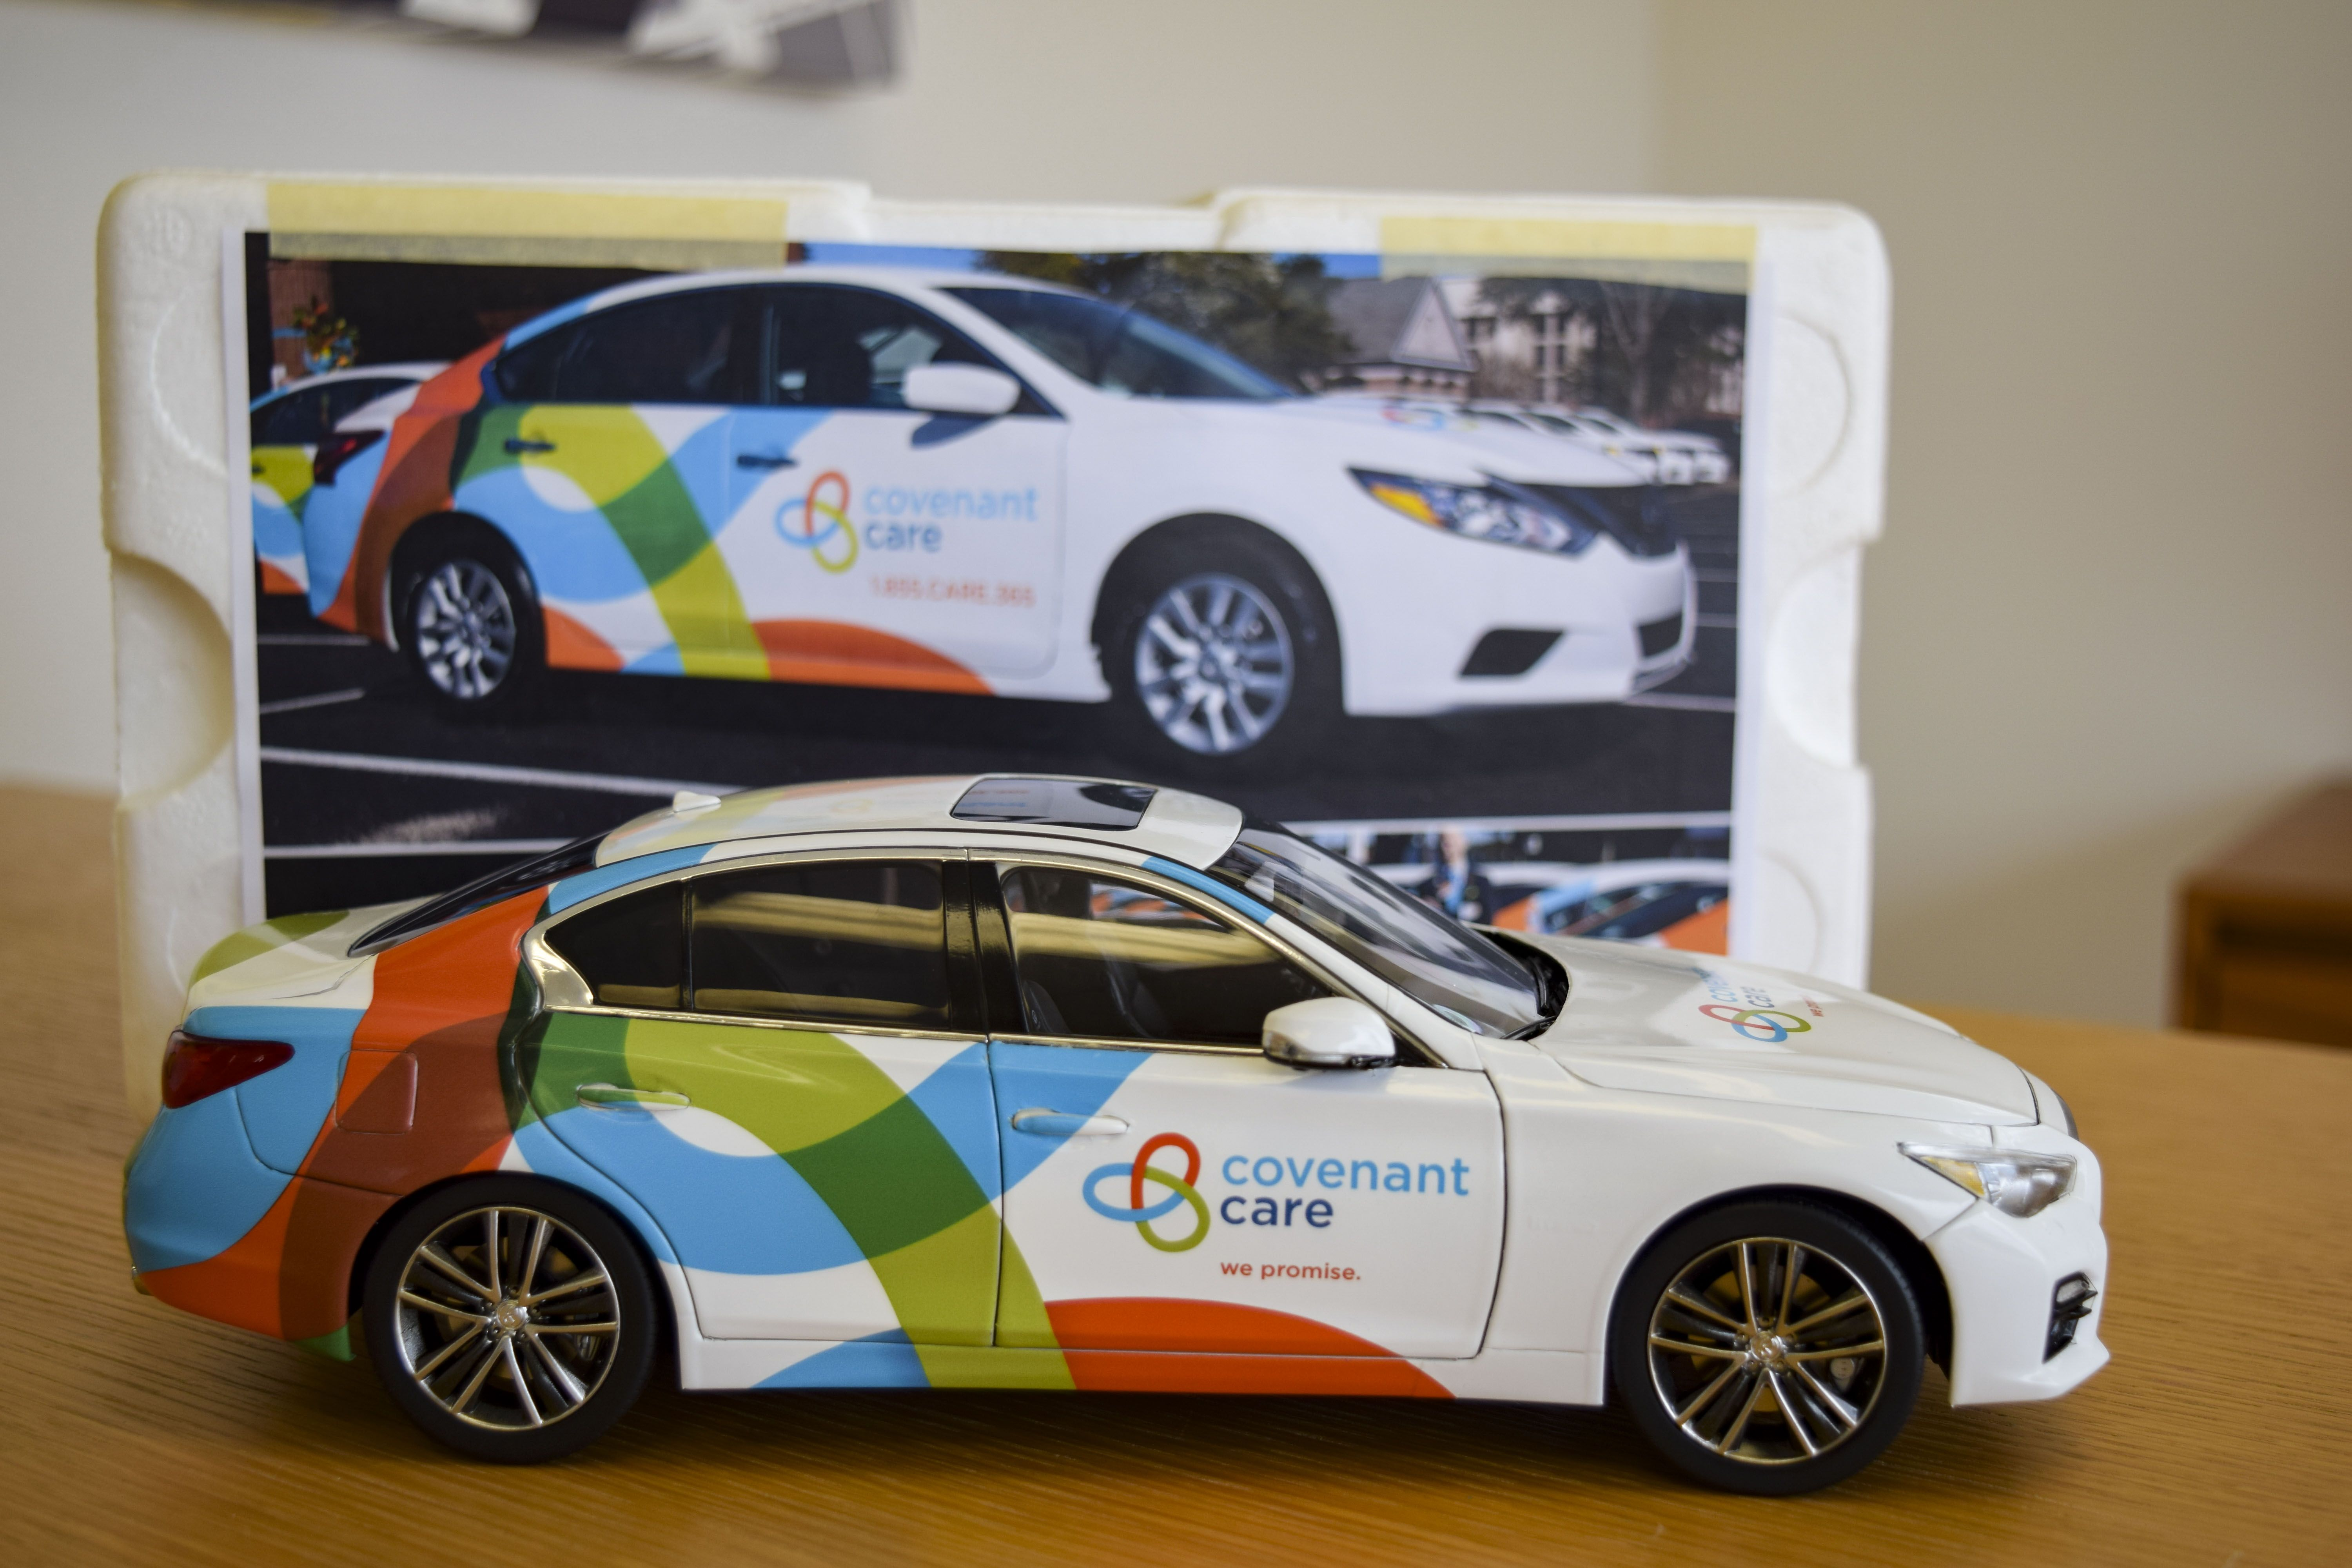 Mini carwrap for Covenant Care by Pensacola Sign in